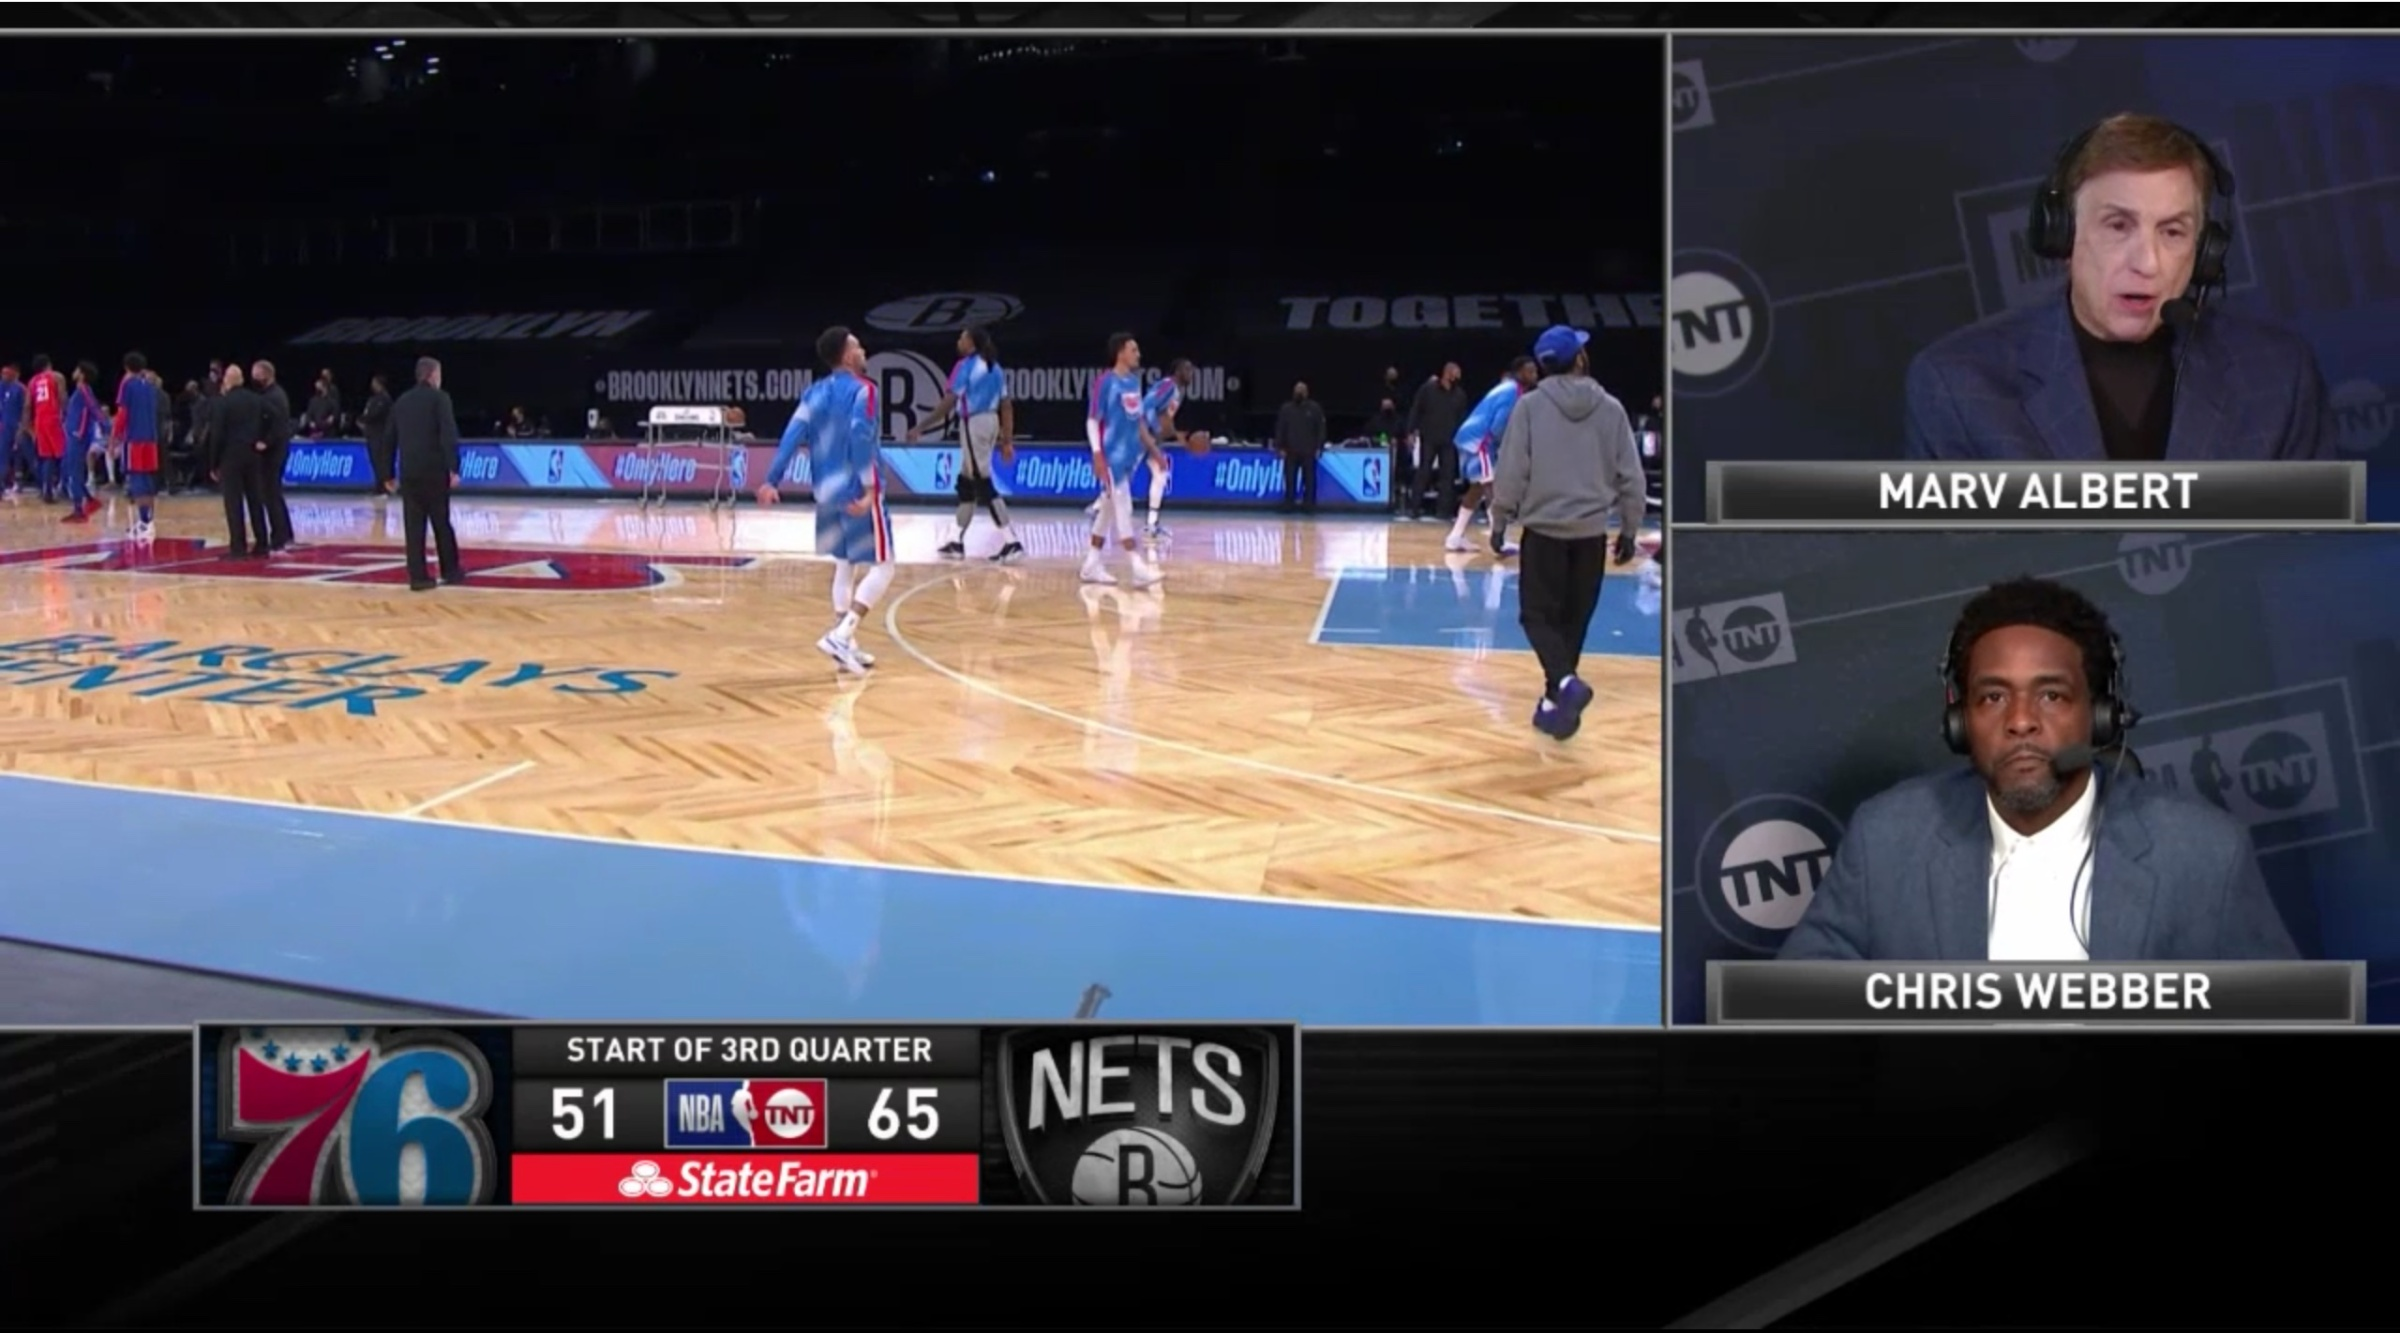 Marv Albert and Chris Webber at halftime during the Jan. 7 Sixers-Nets game on TNT